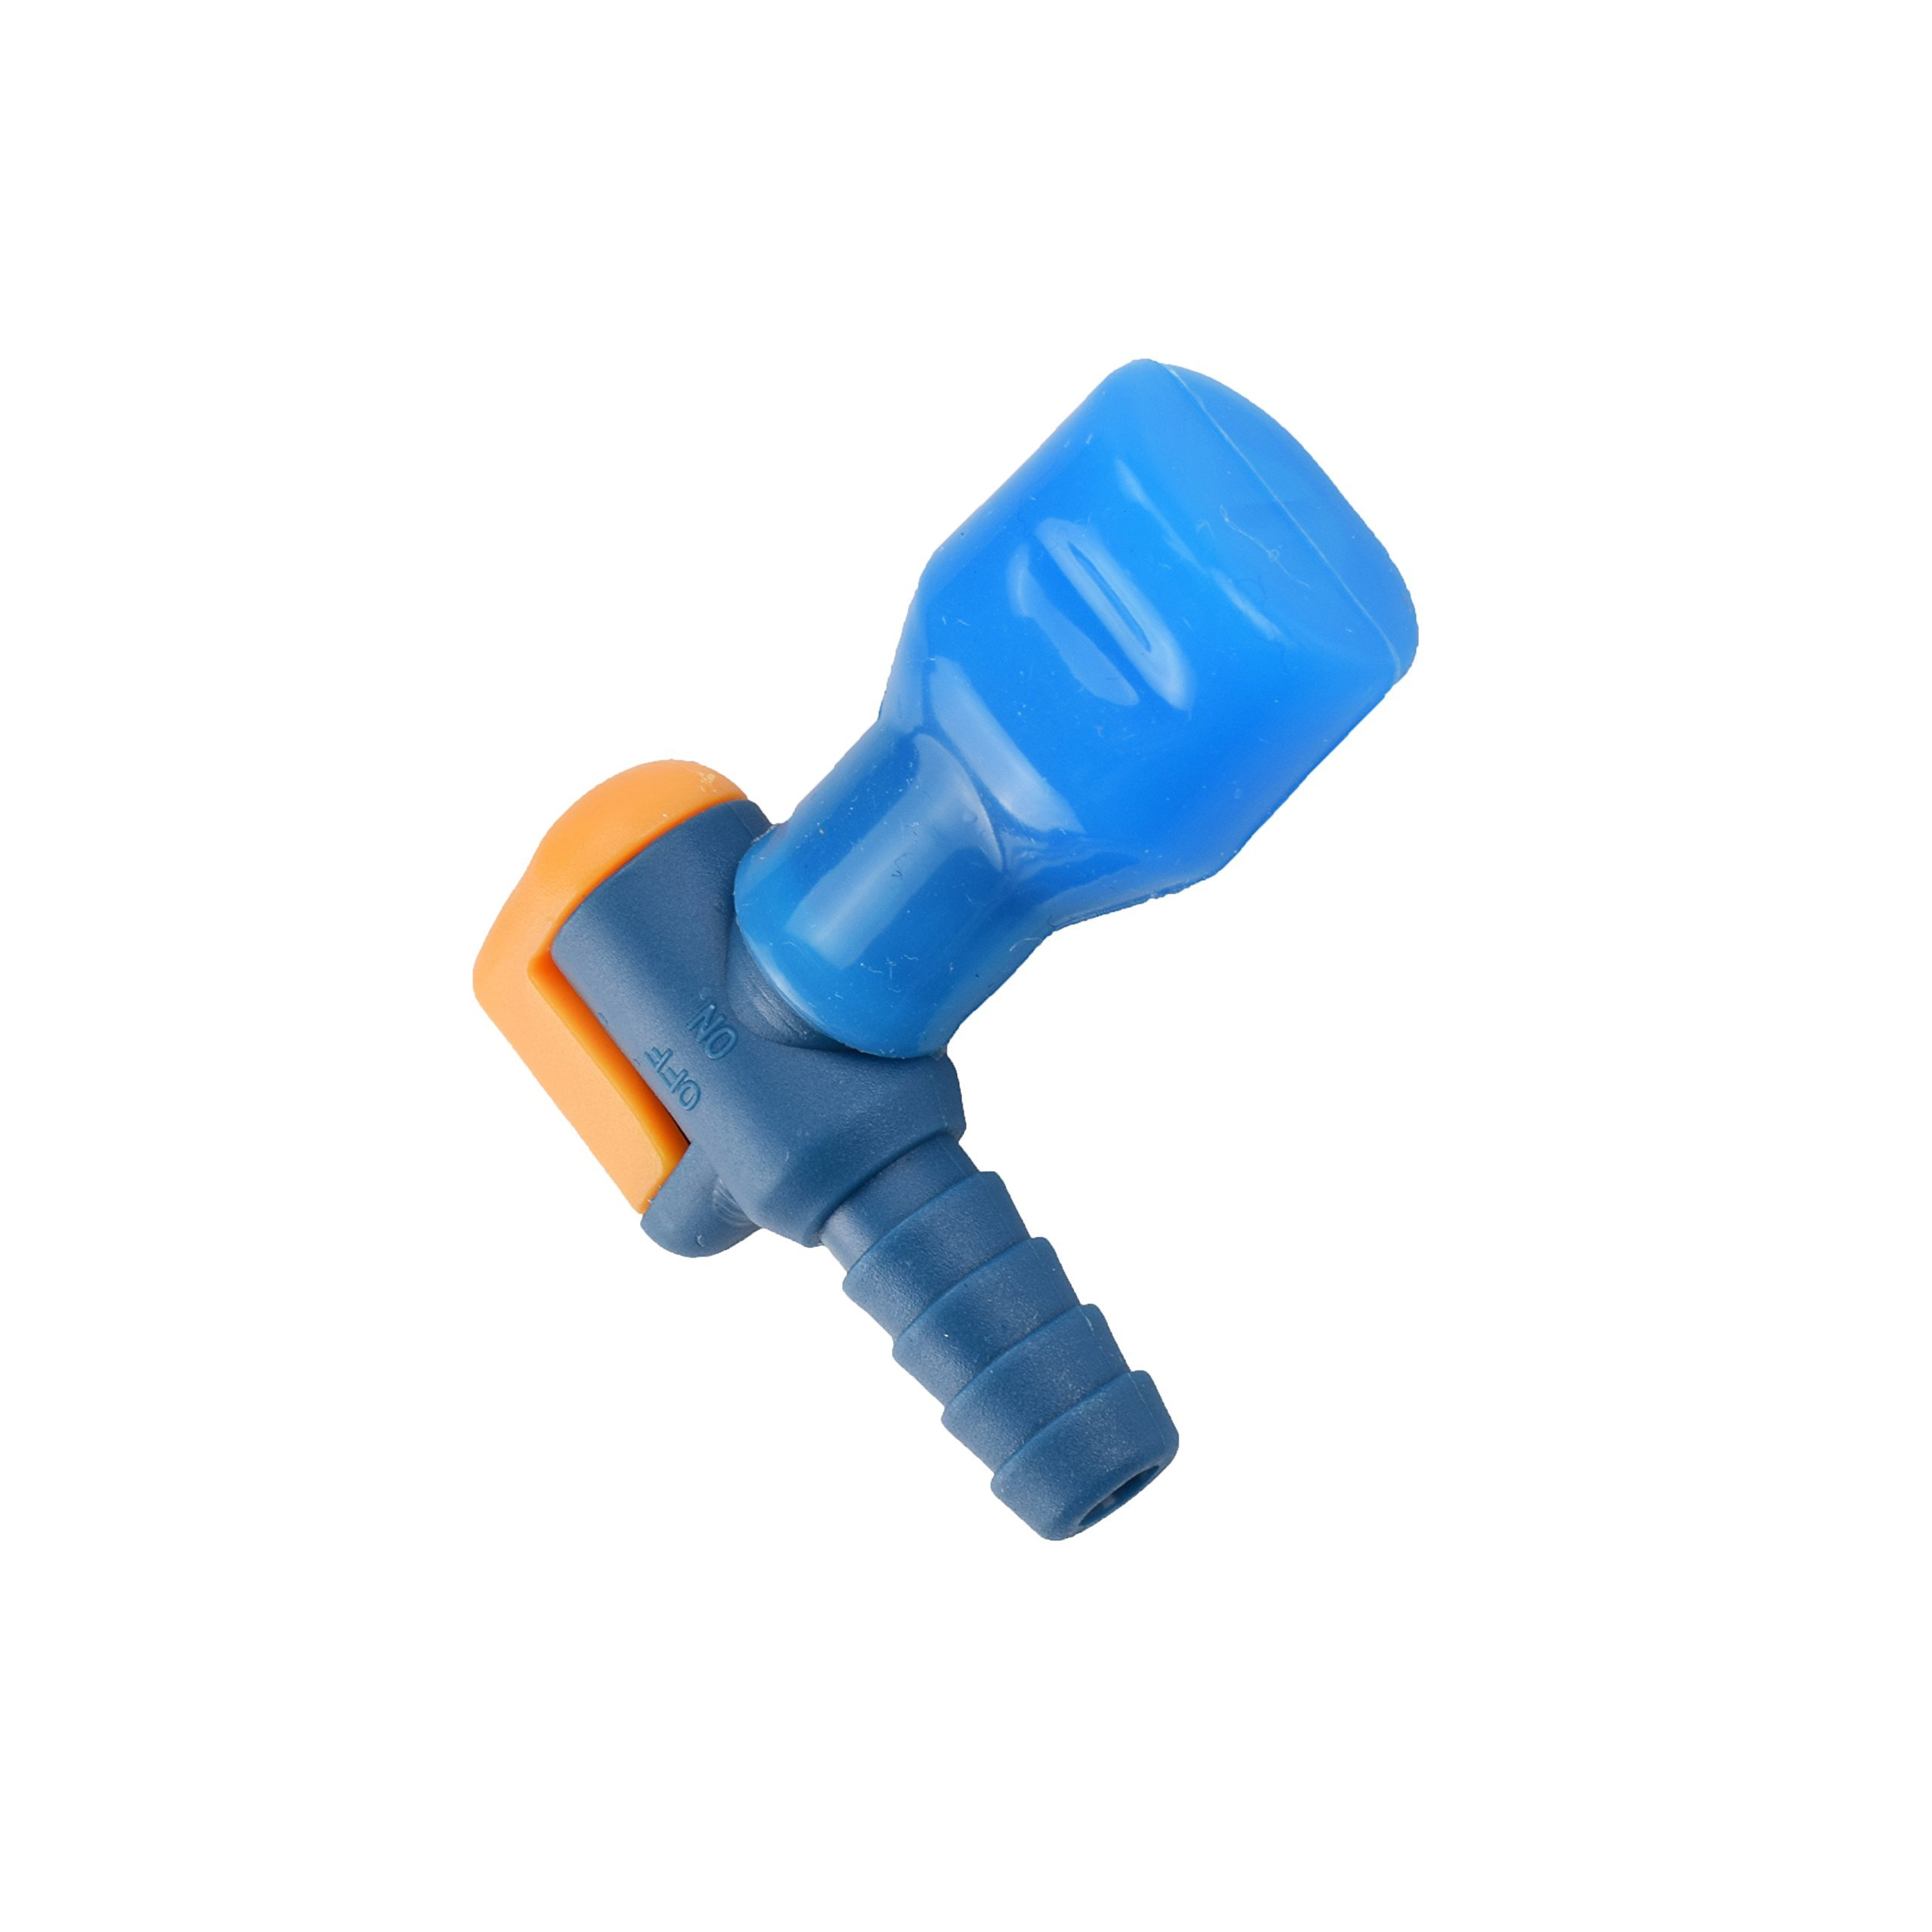 J. Carp ON-OFF Switch Bite Valve Tube Nozzle Replacement For Hydration Pack Bladder (Blue-90 degree)